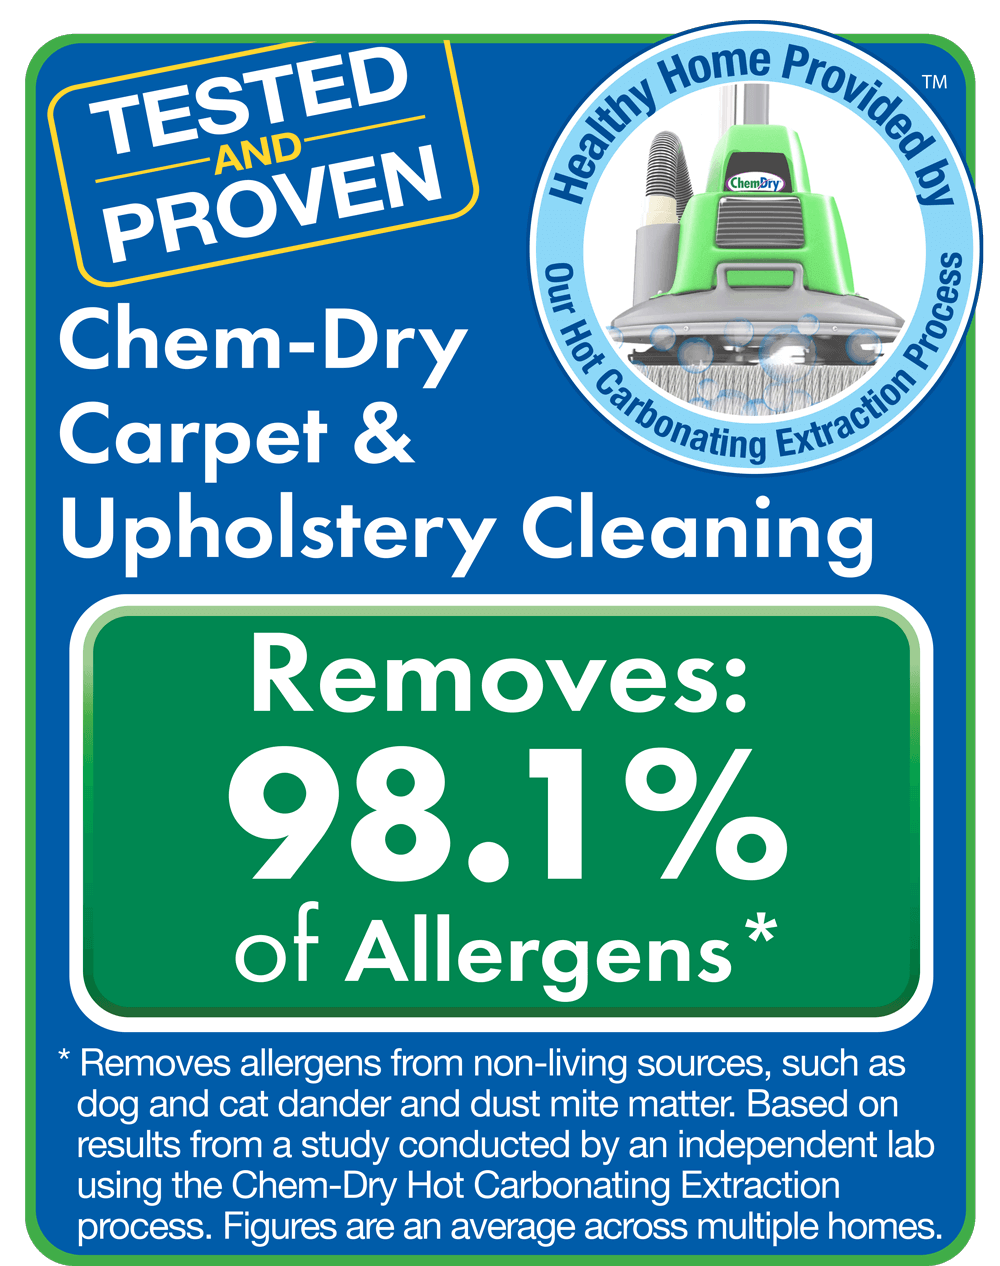 chem-dry upholstery and carpet cleaning health stats.